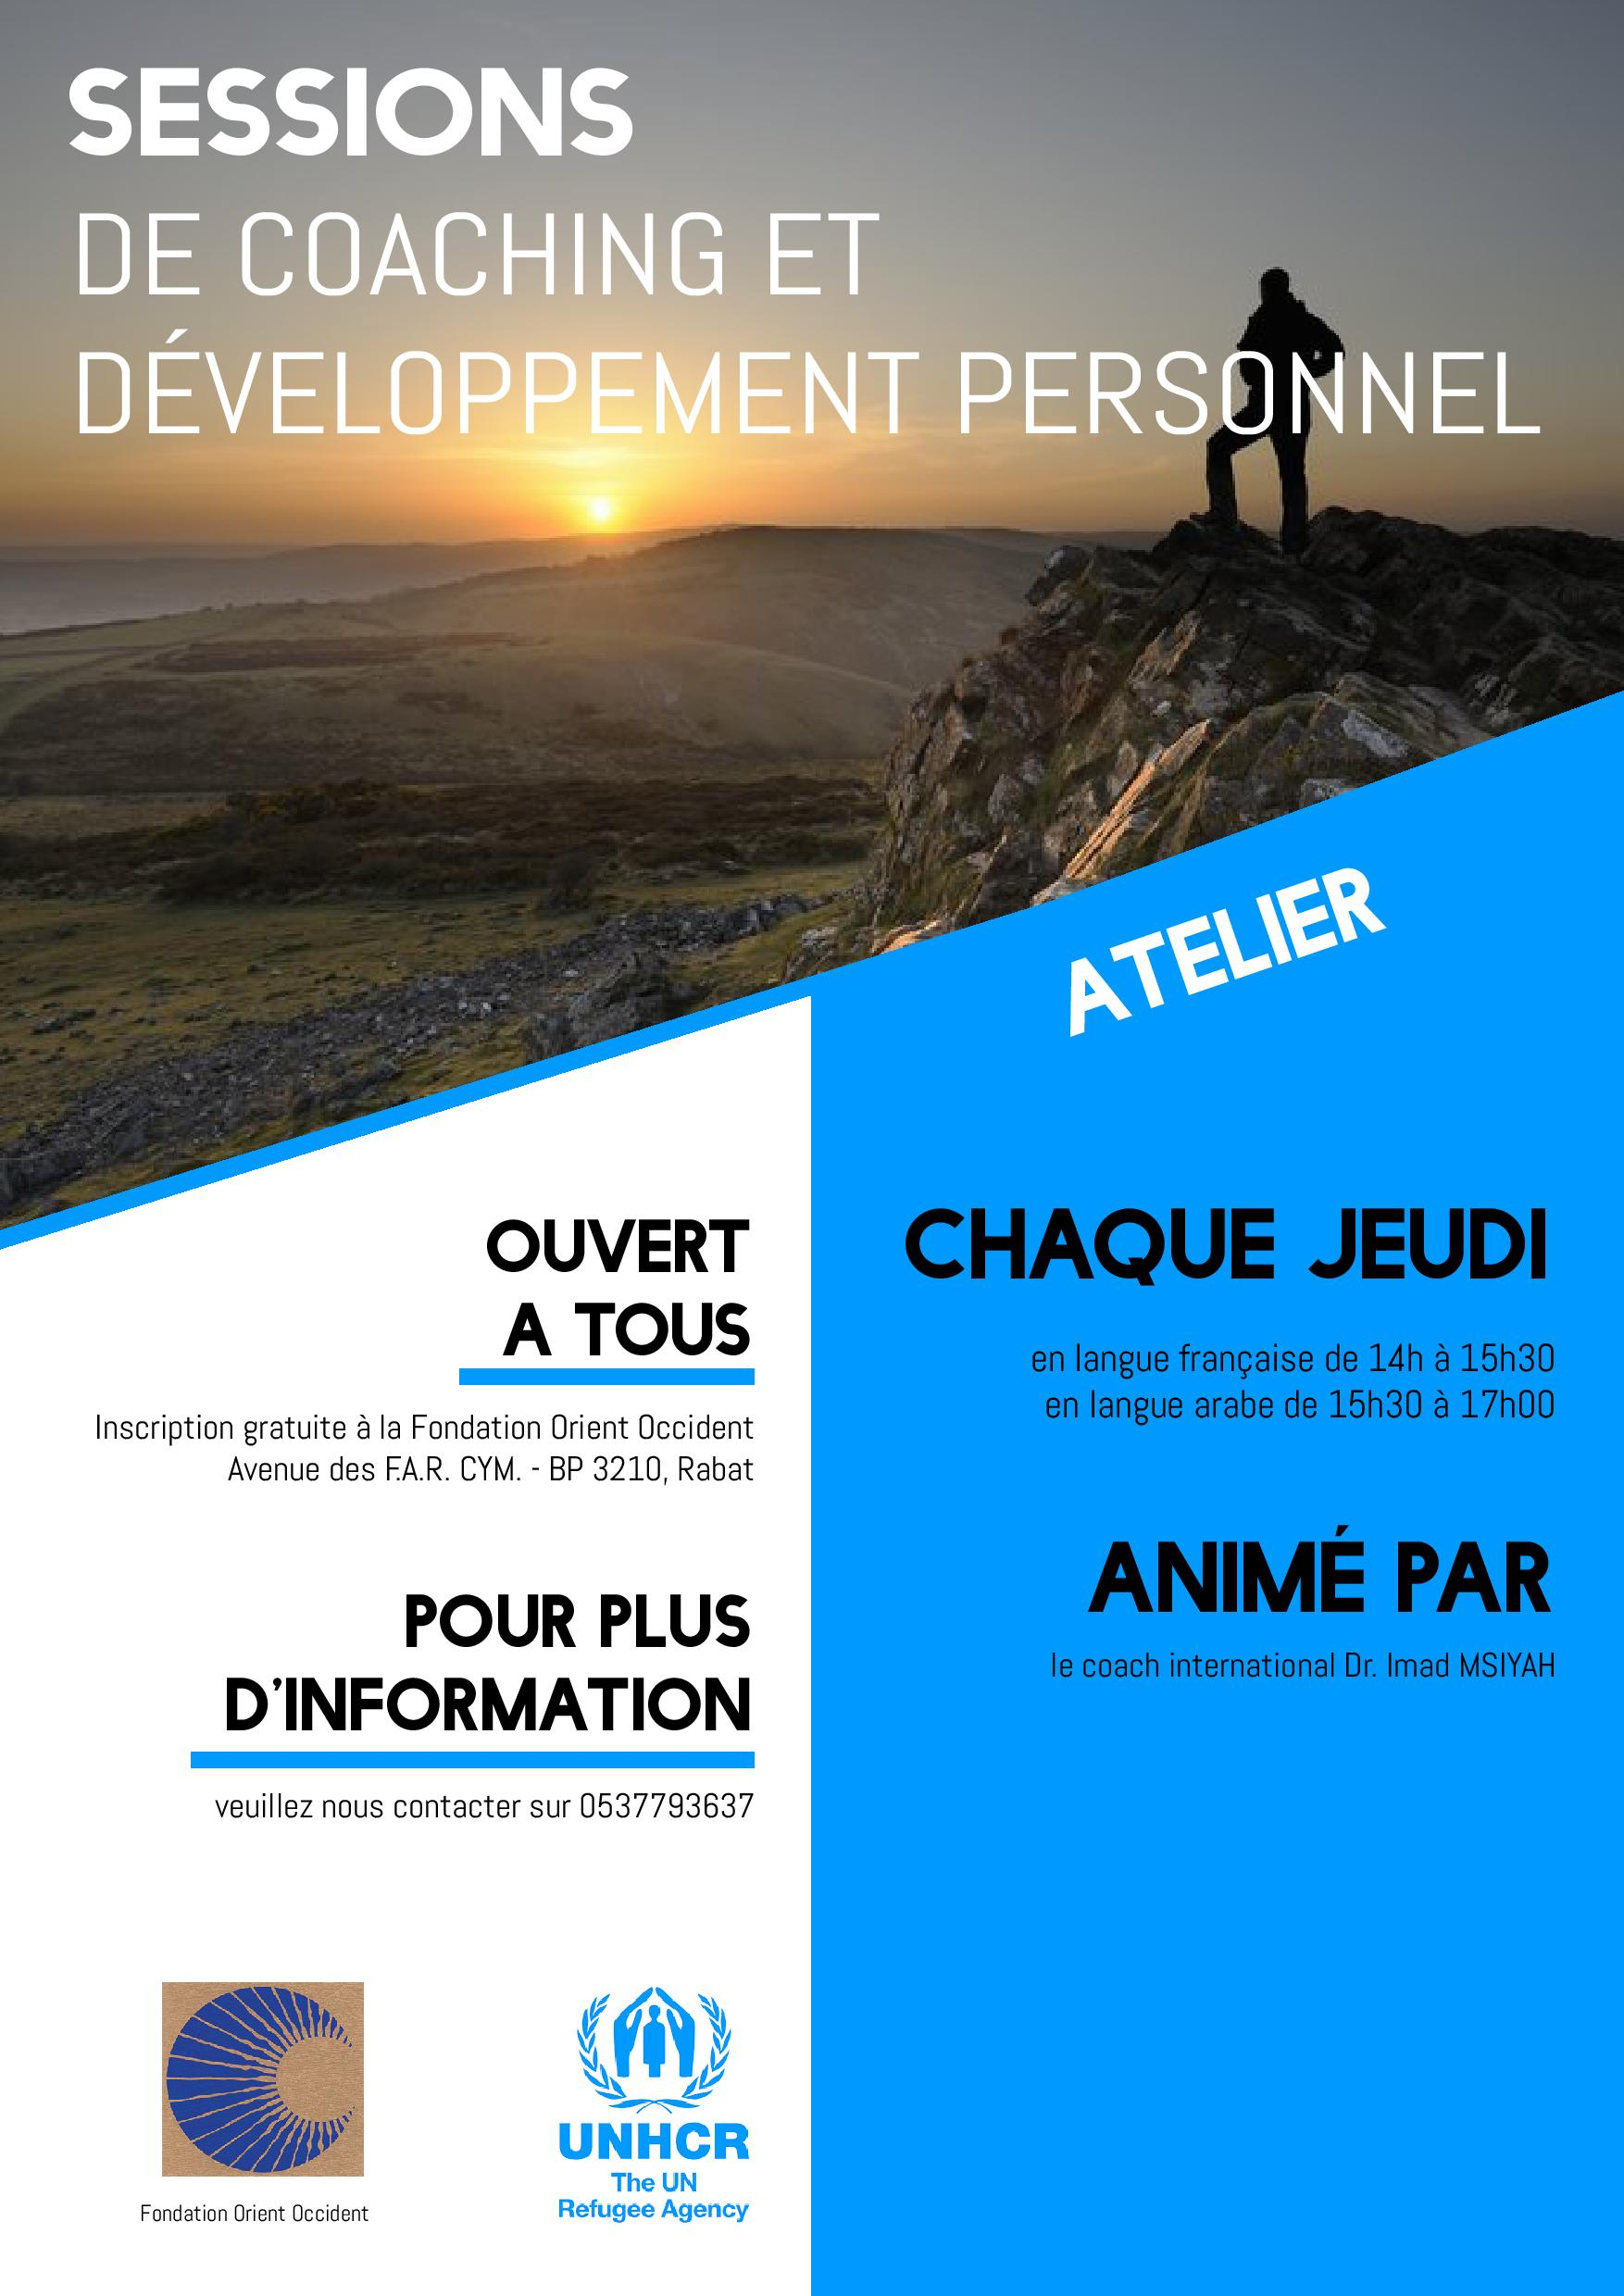 Personal Development and Coaching Sessions every Thursday at the Fondation Orient-Occident – Open to All